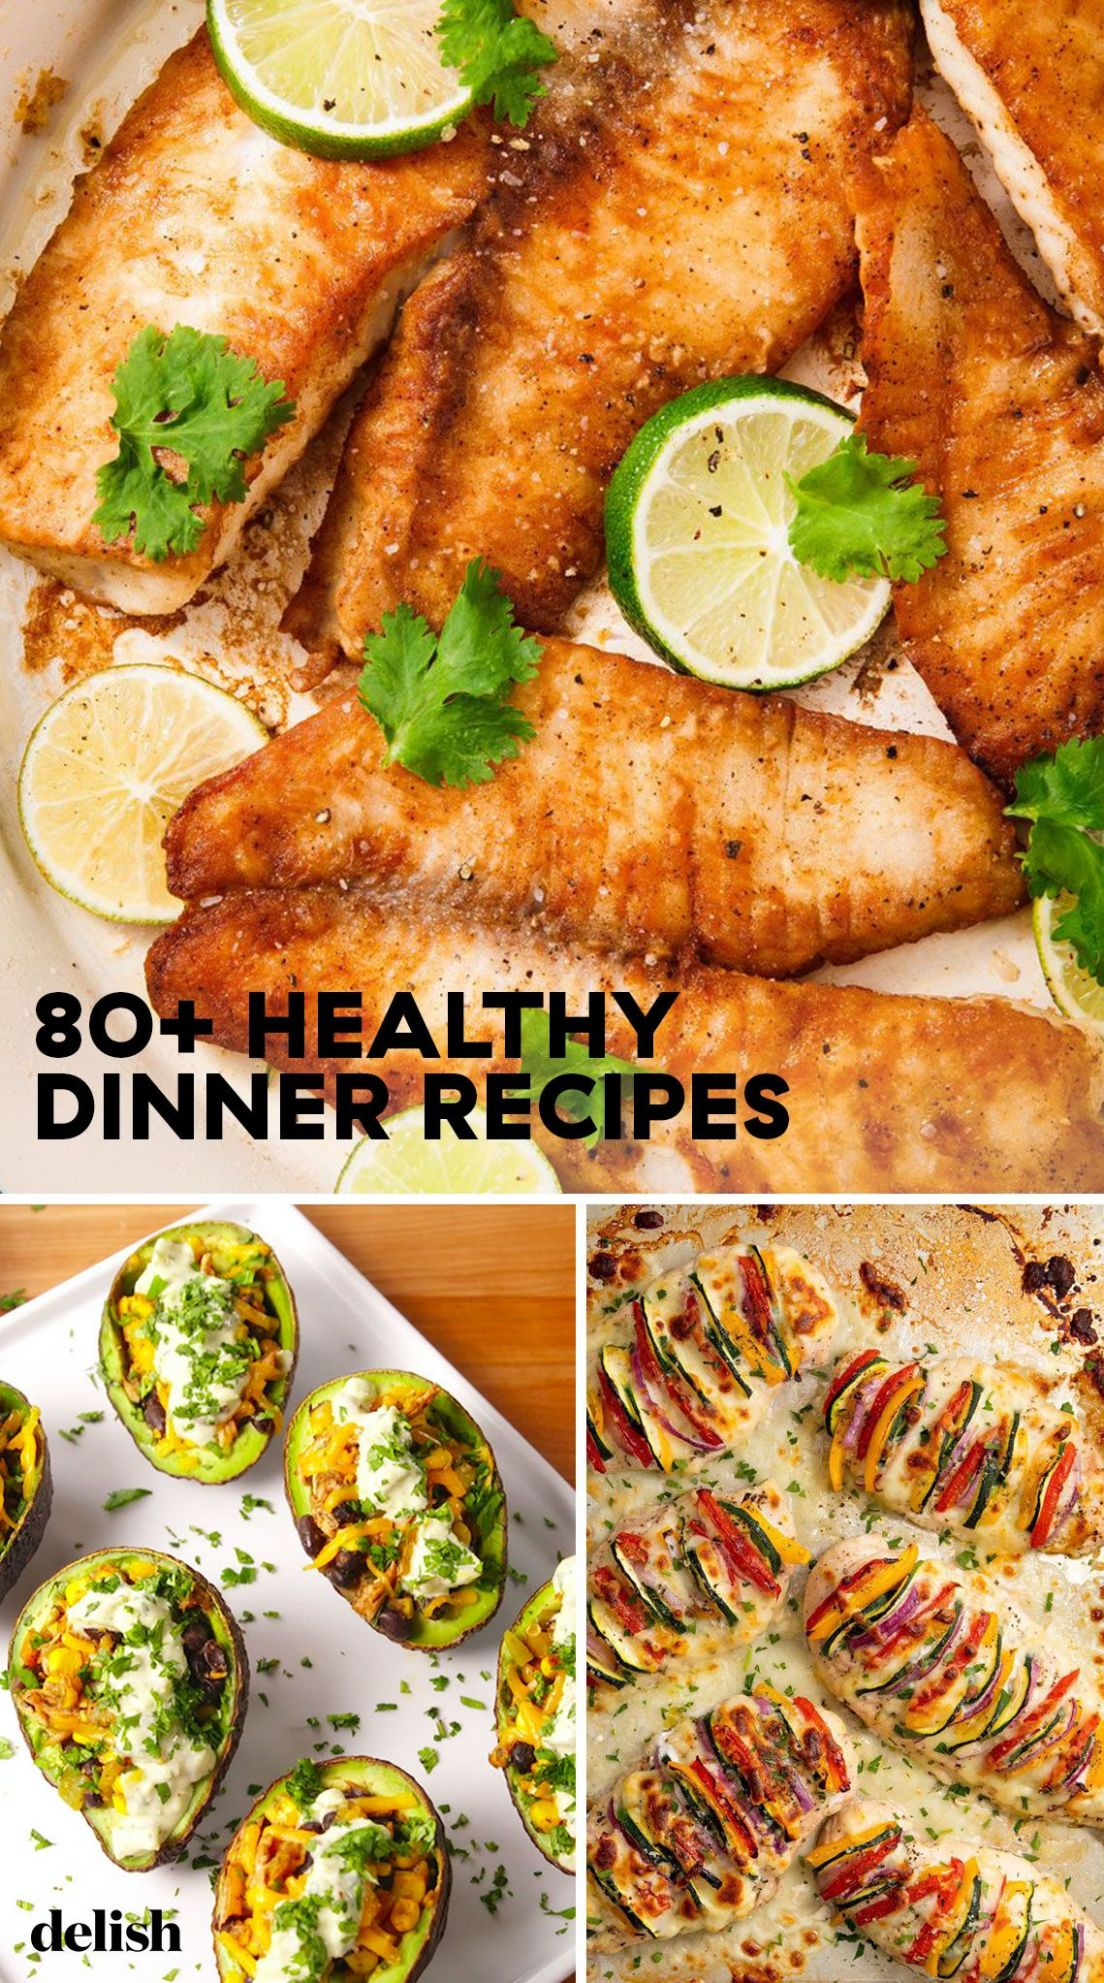 11+ Easy Healthy Dinner Ideas - Best Recipes for Healthy Dinners - Healthy Recipes Meals